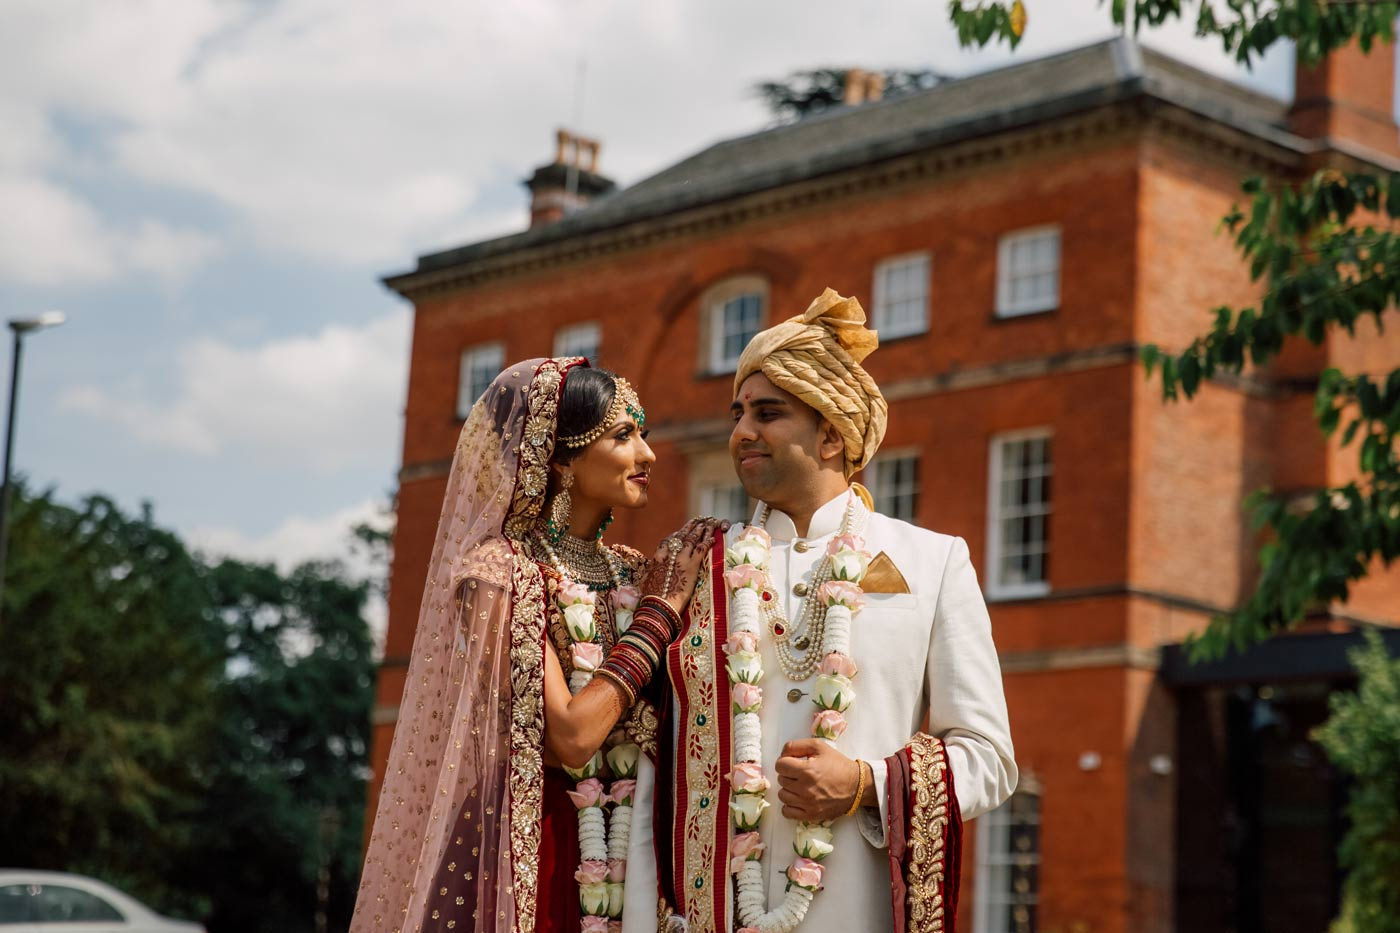 hindu-wedding-photography-at-Winstanley-house-__-Florika-&-Kishan